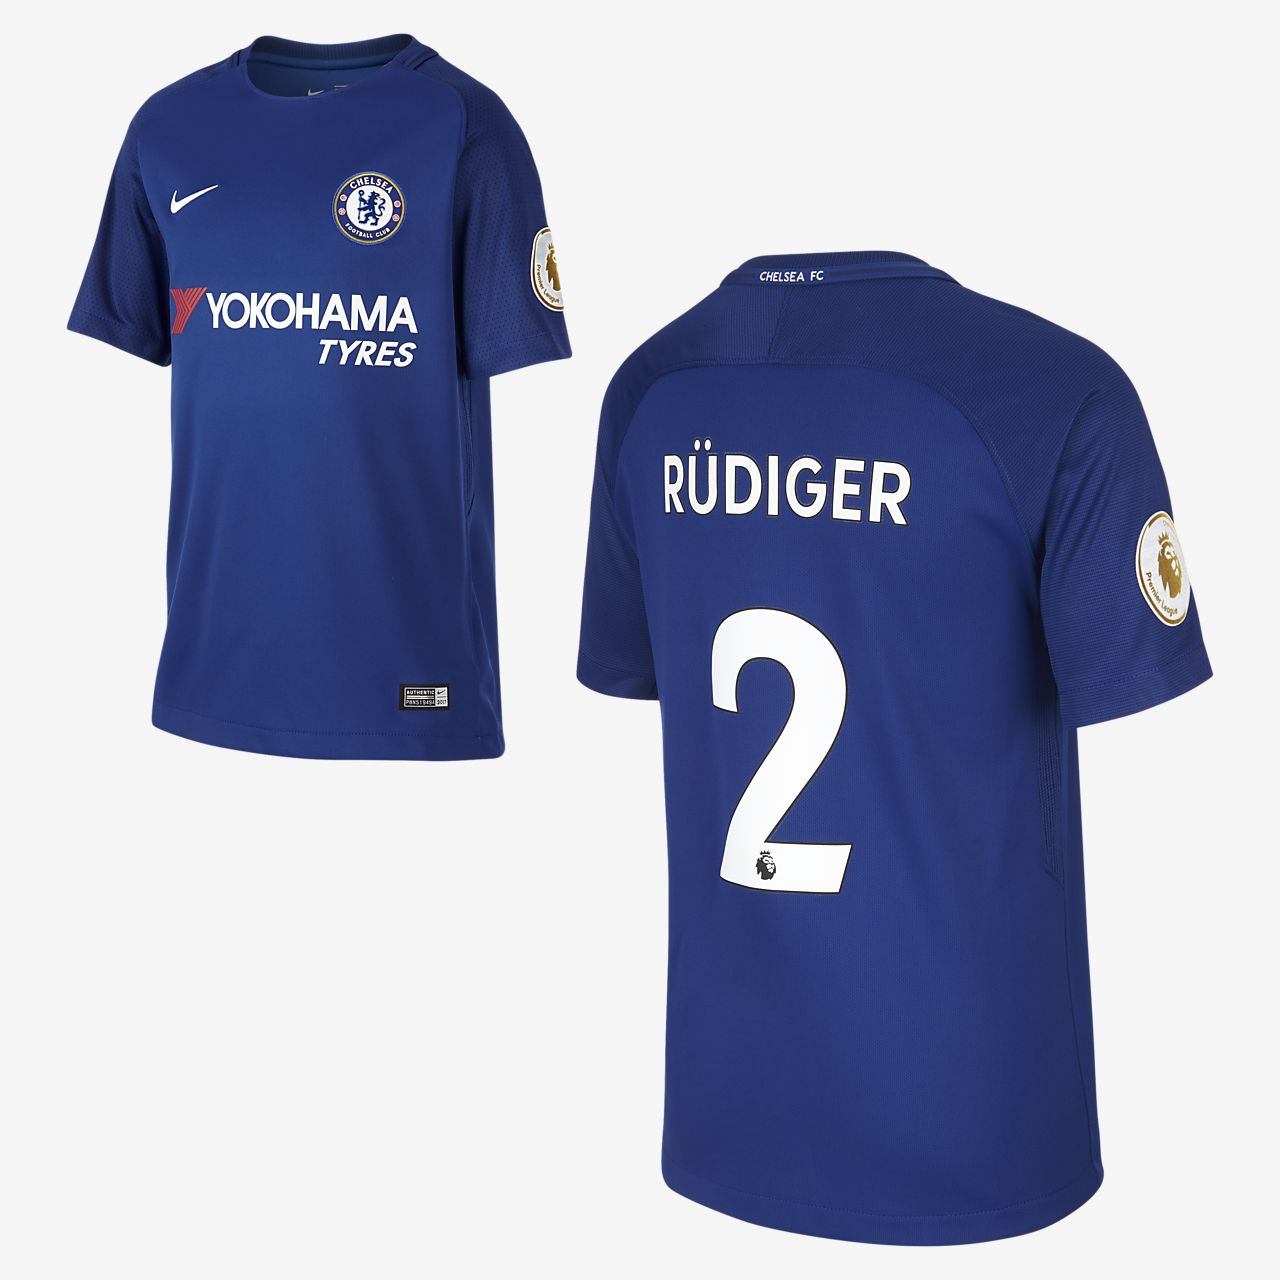 2017/18 Chelsea FC Stadium Home (Antonio Rüdiger) Older Kids' Football Shirt